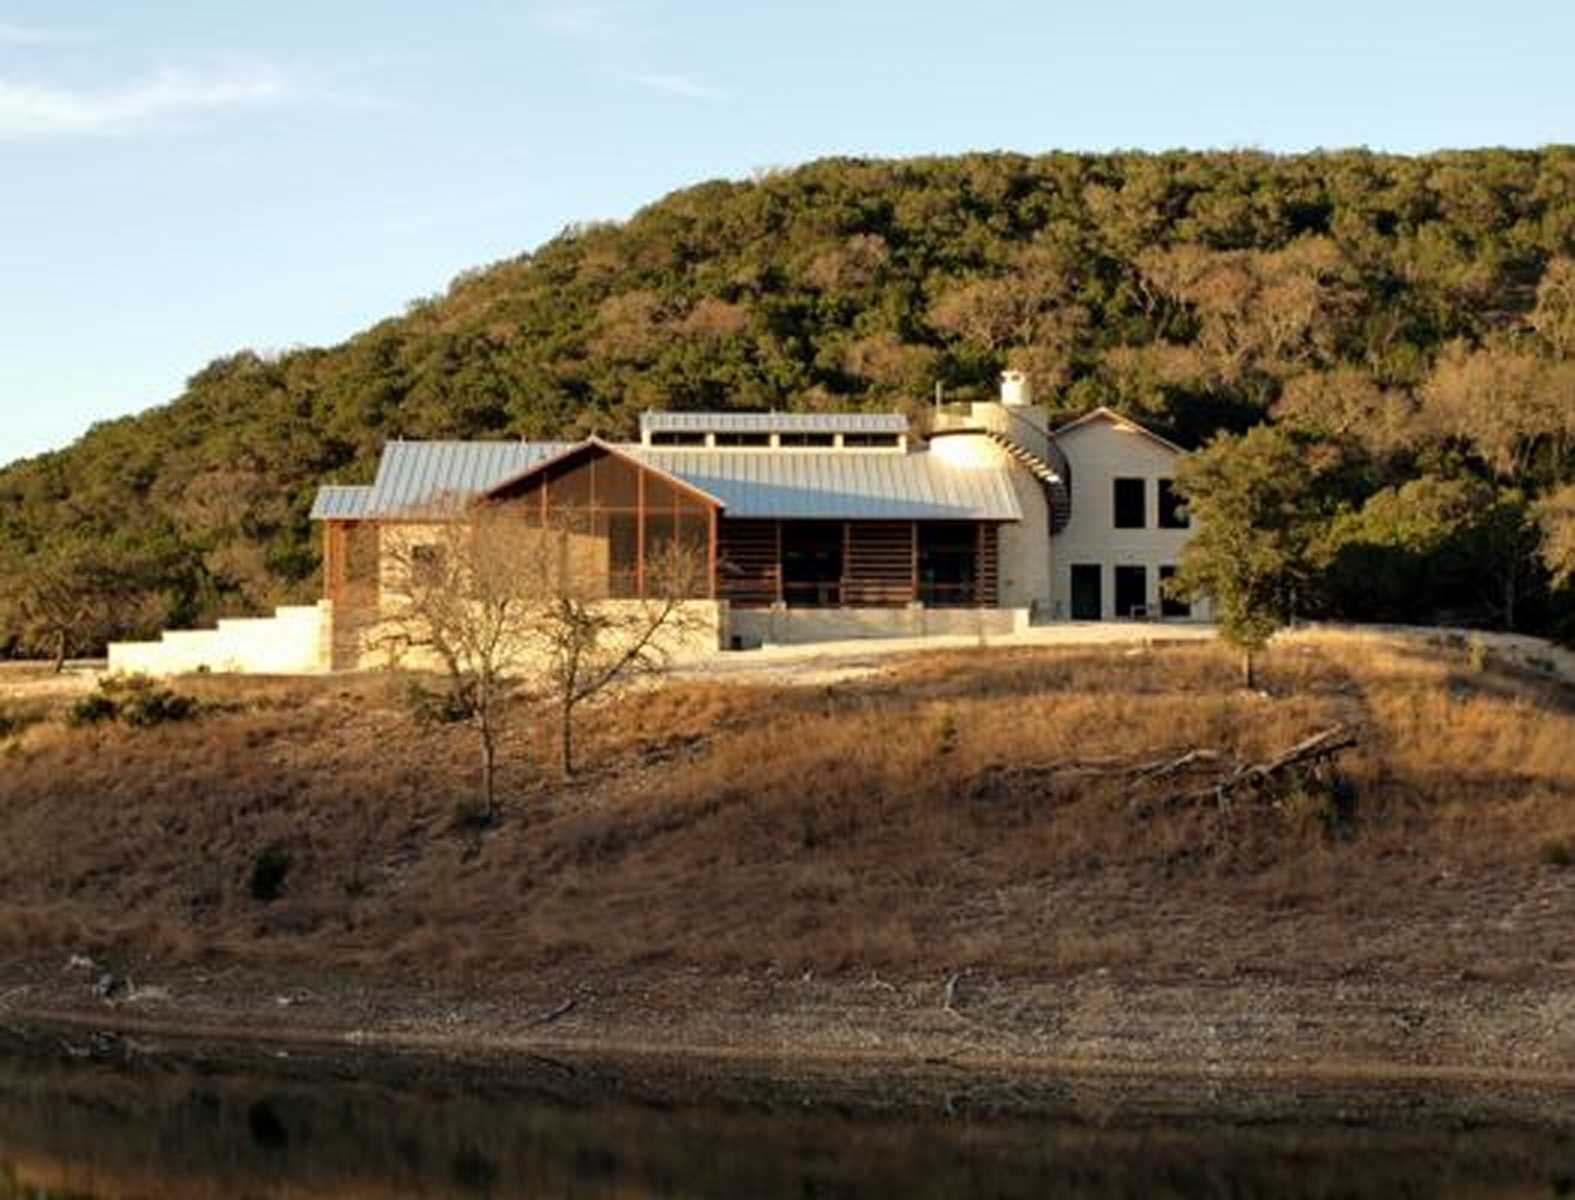 Texas hill country architect echo valley ranch designer for Hill country architecture